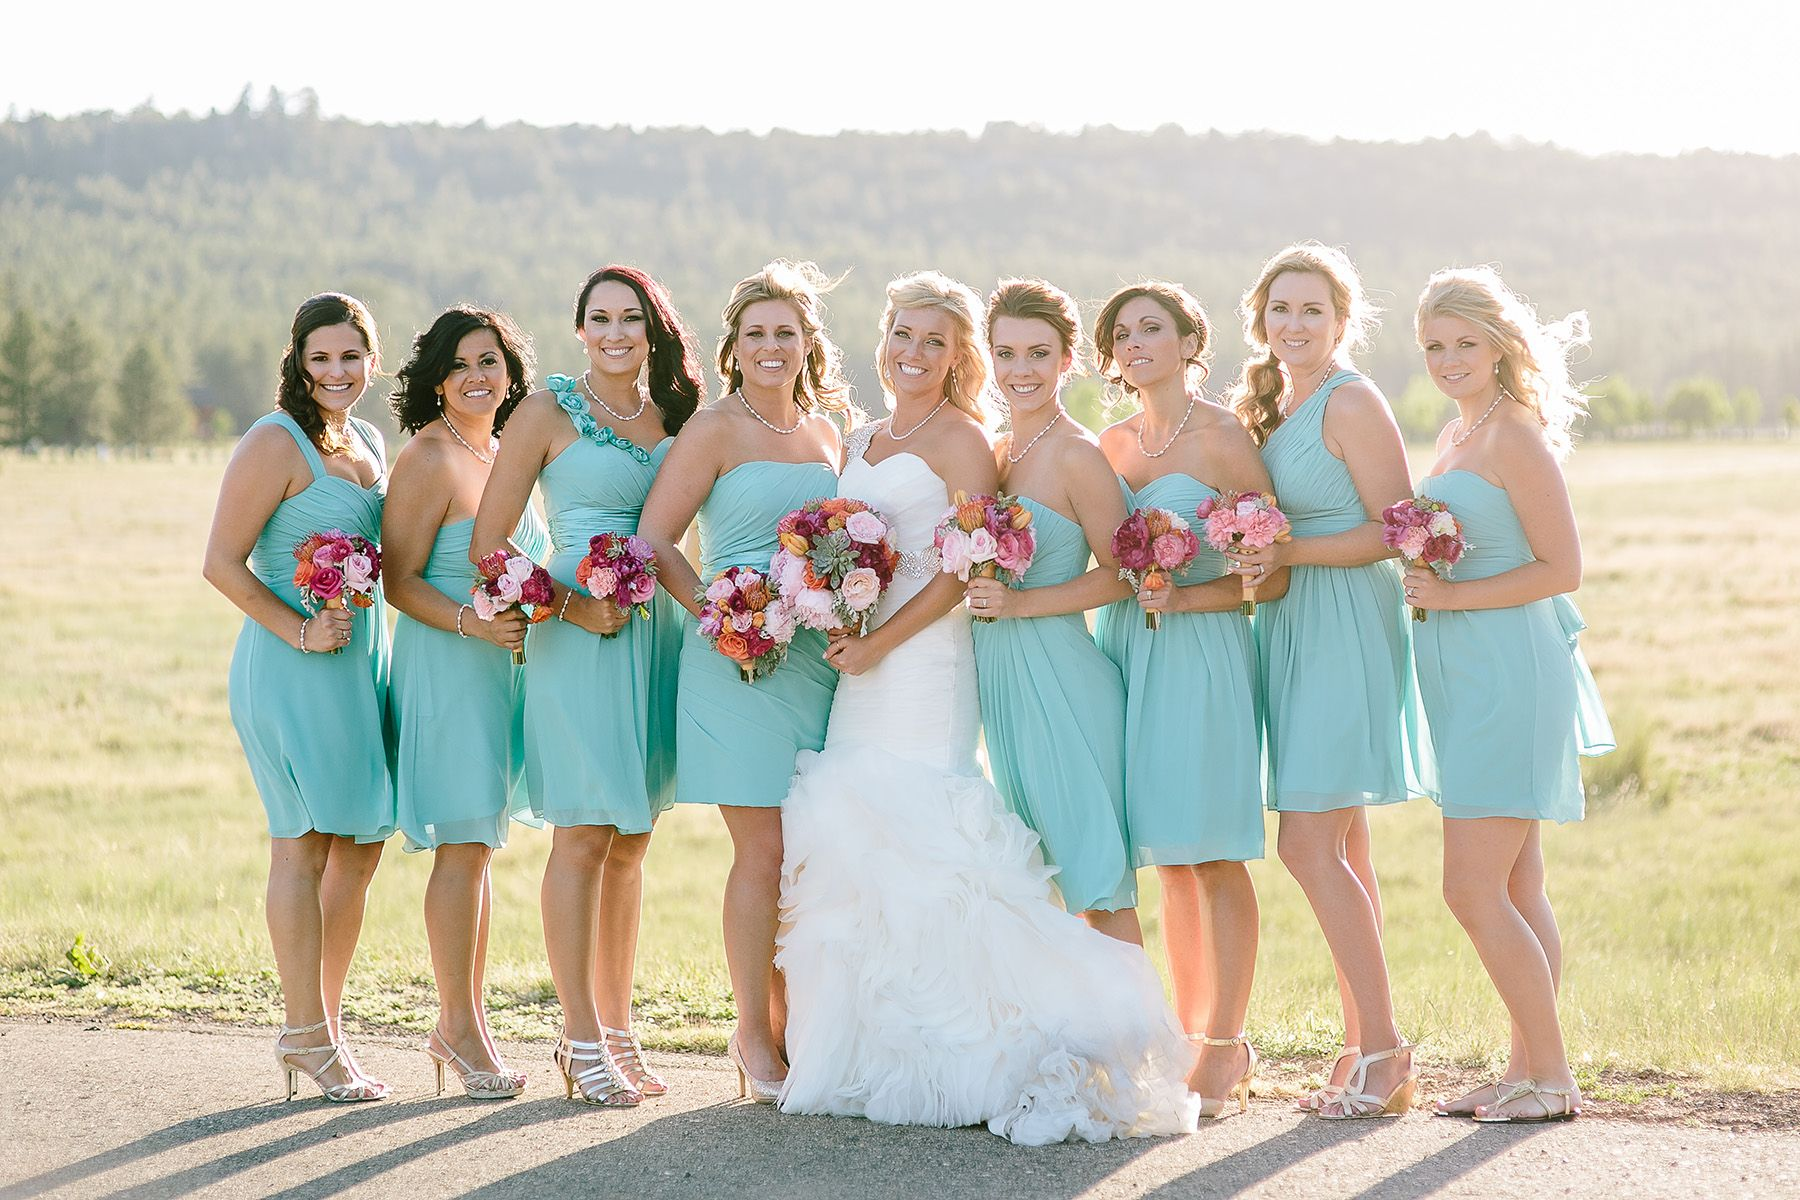 Short, Mismatched, Turquoise Bridesmaid Dresses with Red and Pink ...